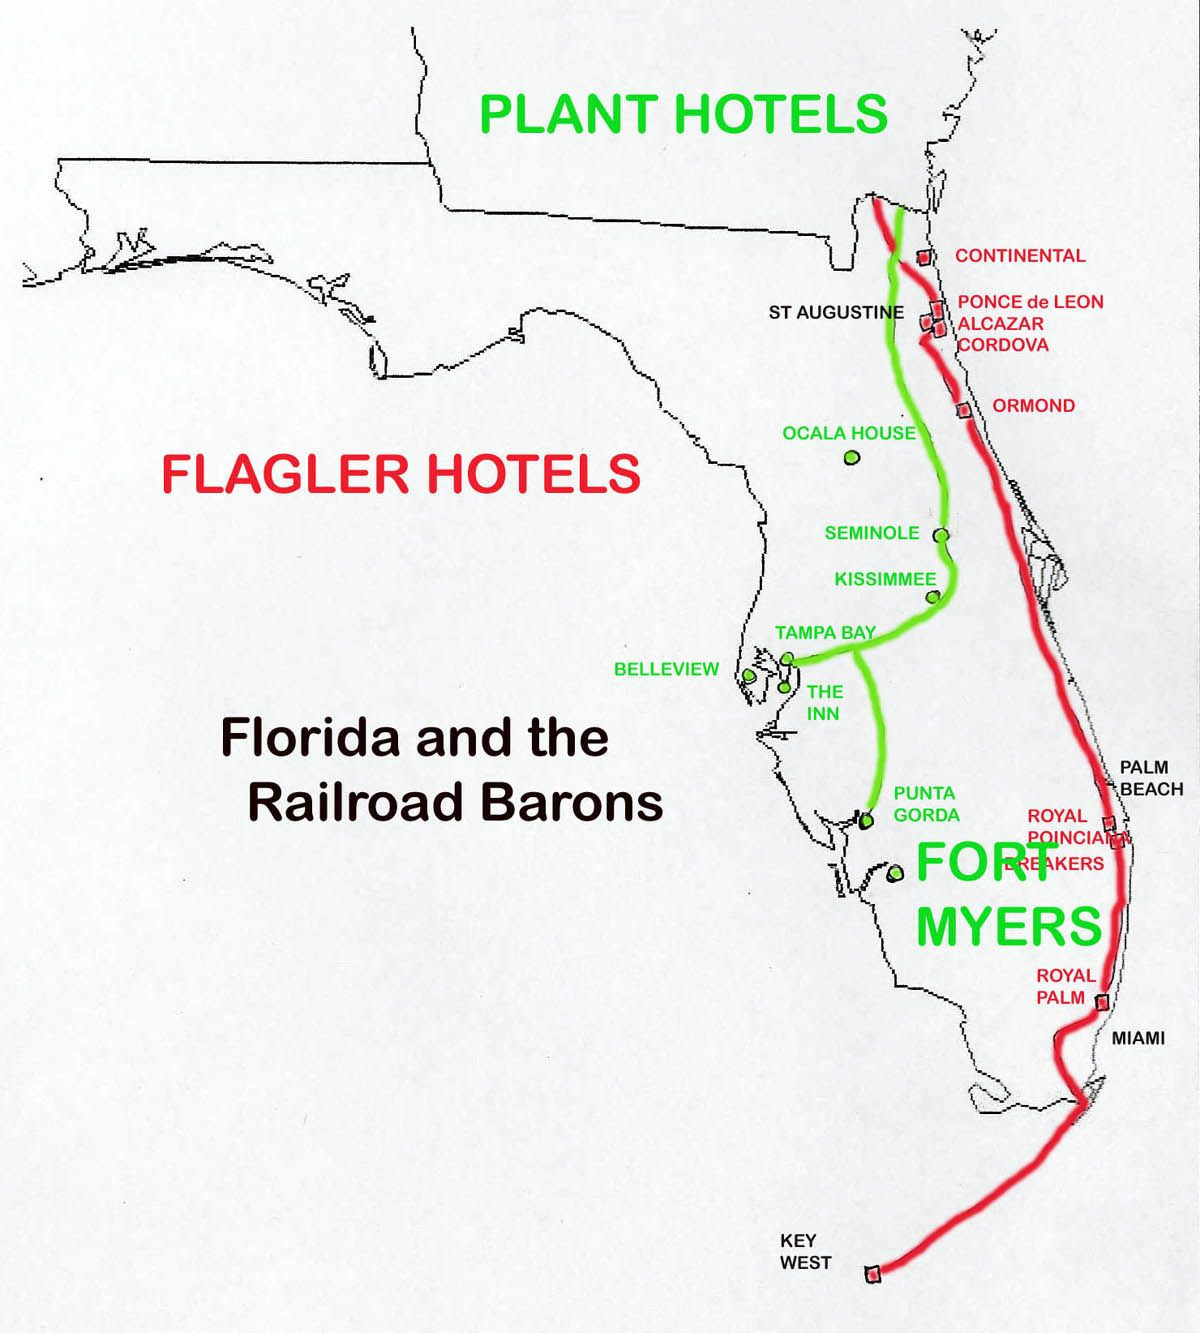 Florida Railroad Map.Florida Railroads In 1880 1900 Railway Maps Pinterest Florida